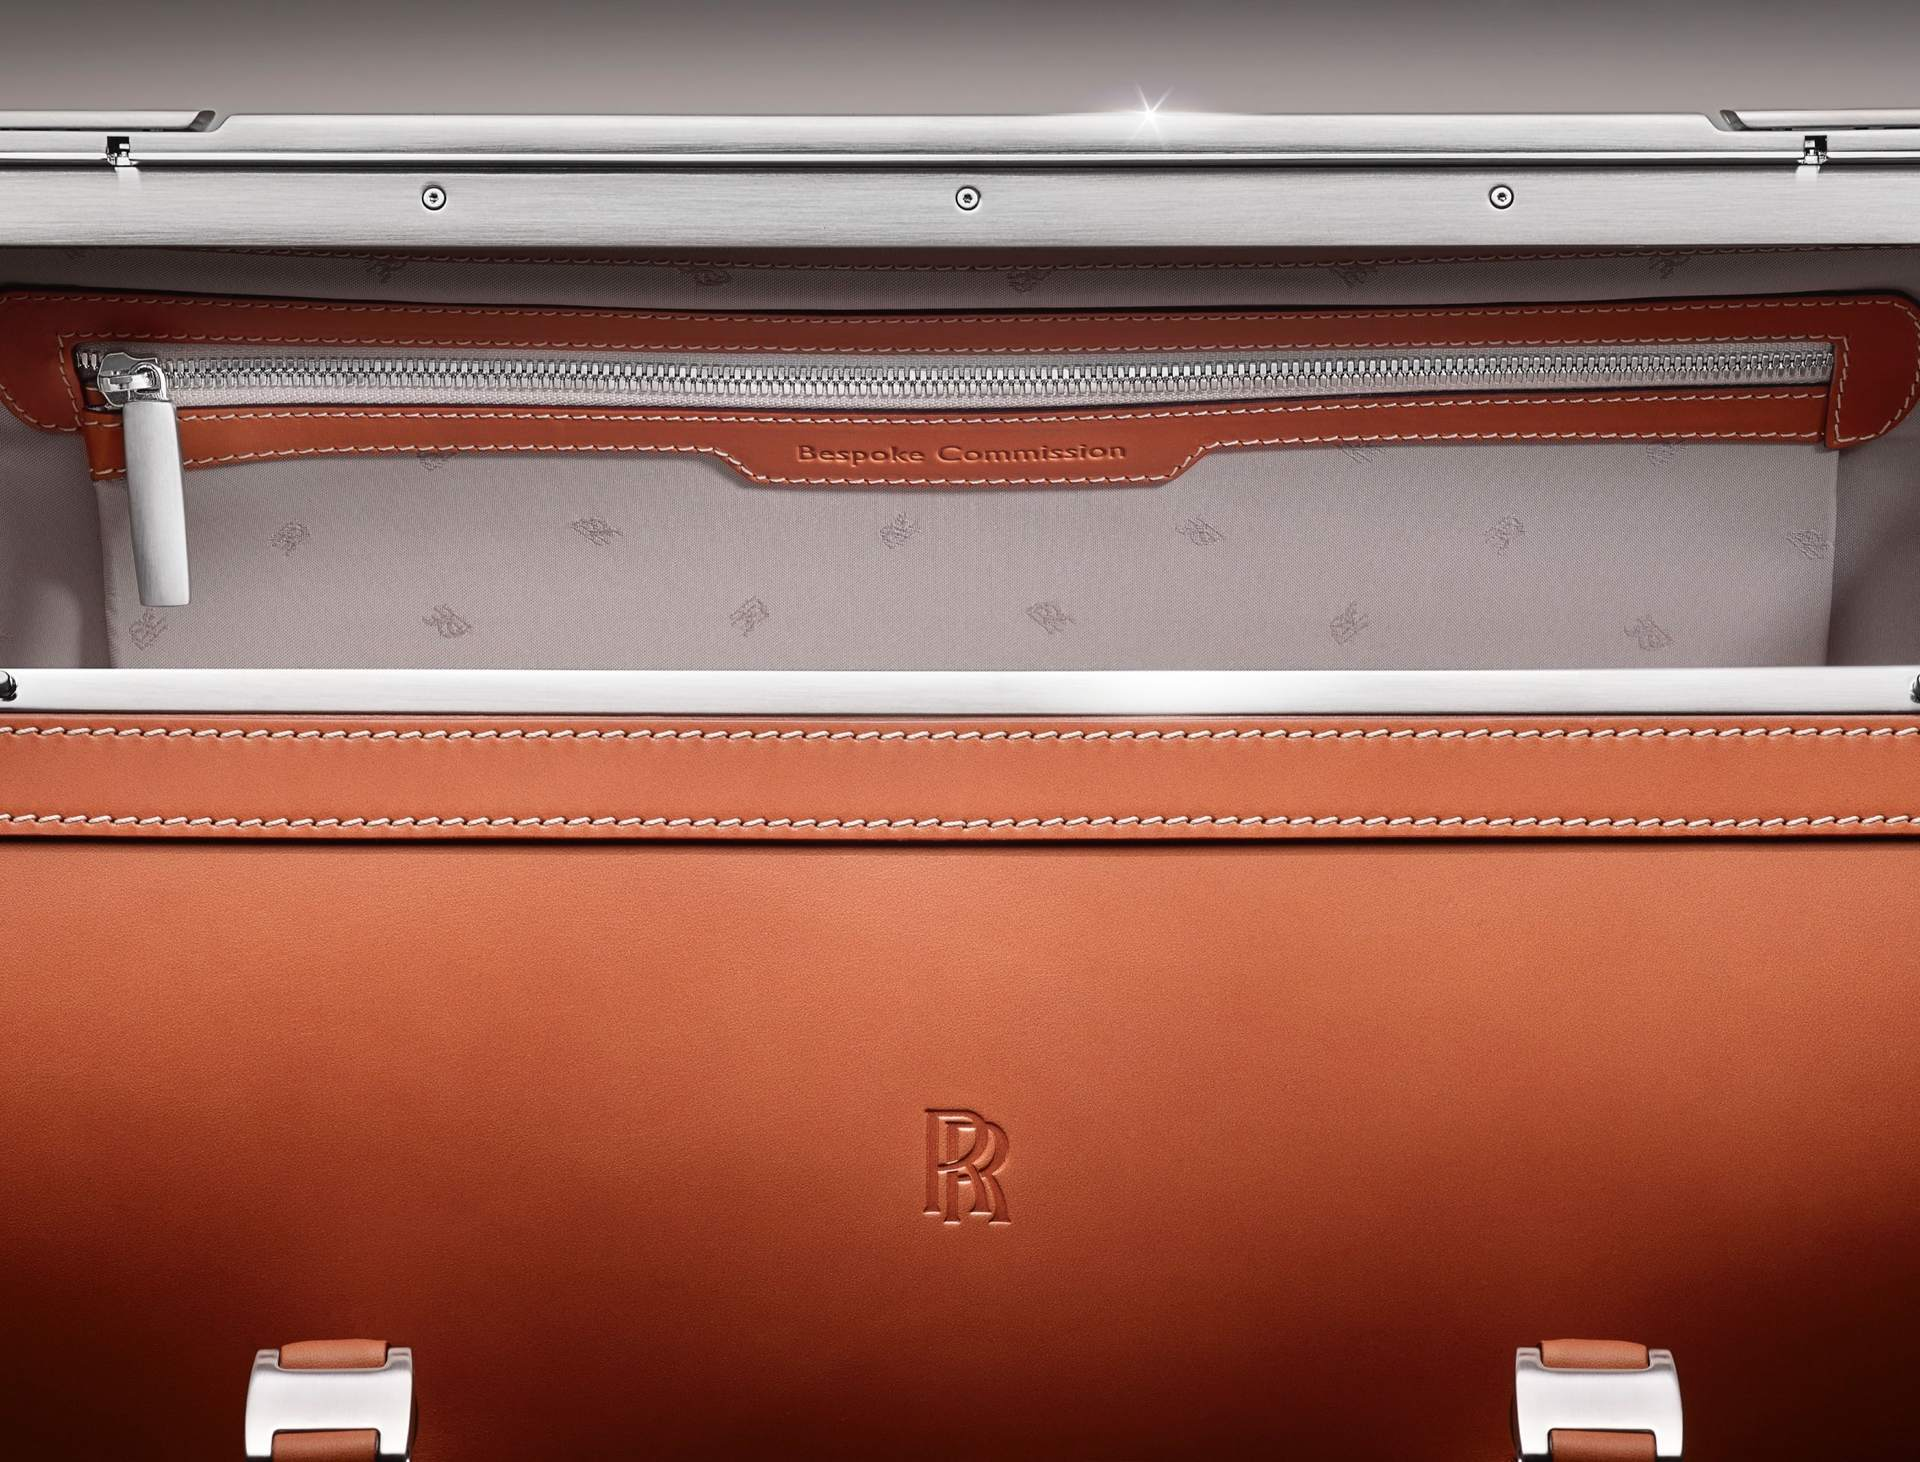 A piece from the Phantom Luggage collection. The picture showcases the small details of the bag, including the leather embossing and the RR monogram embroidery inside the bag.